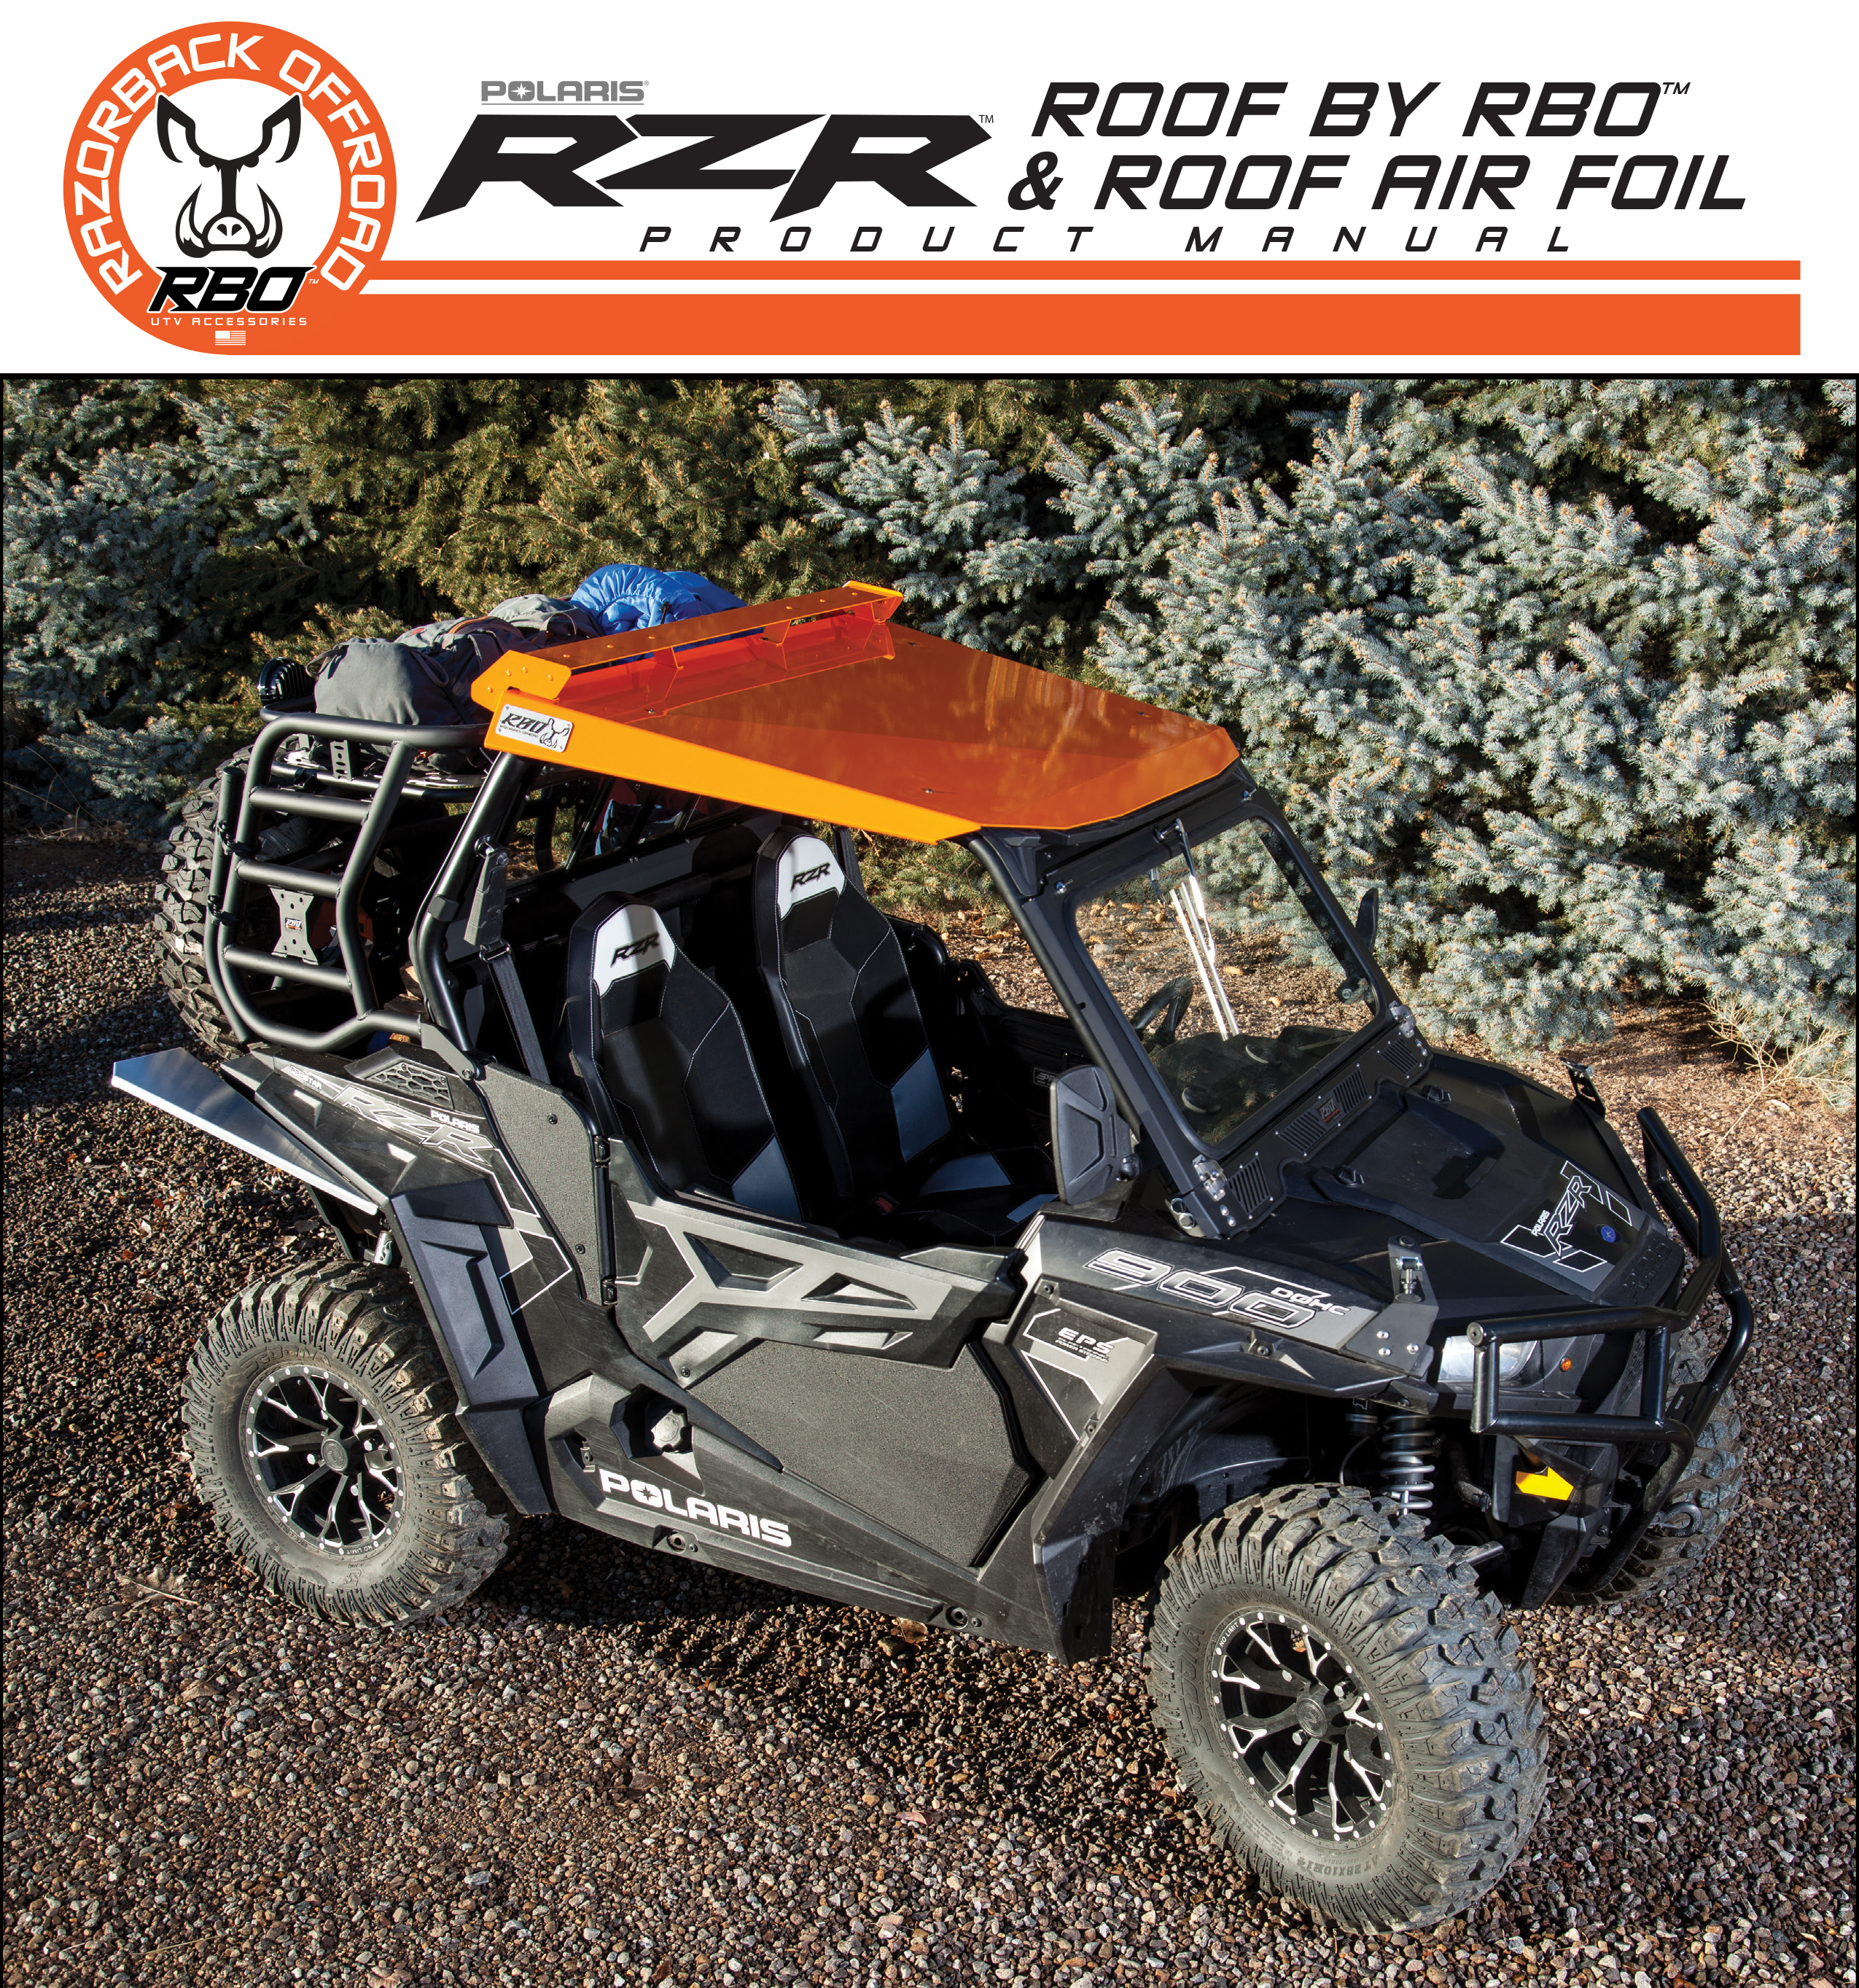 Razorback Offroad RZR 900 Roof Air Foil Product Manual